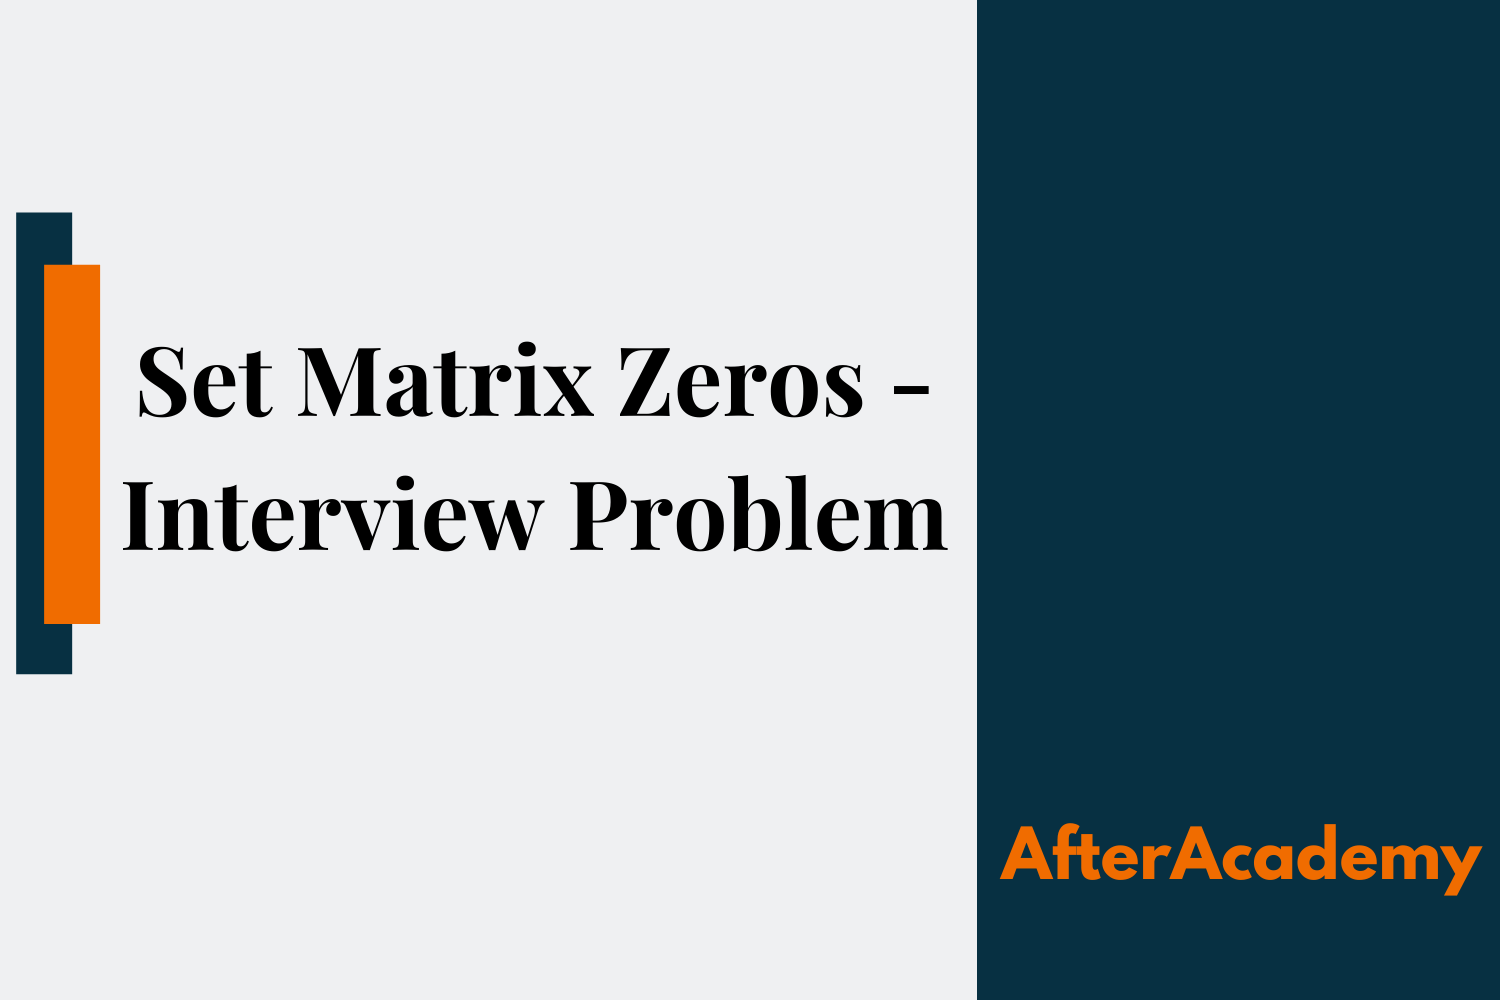 Set Matrix Zeros - Interview Problem